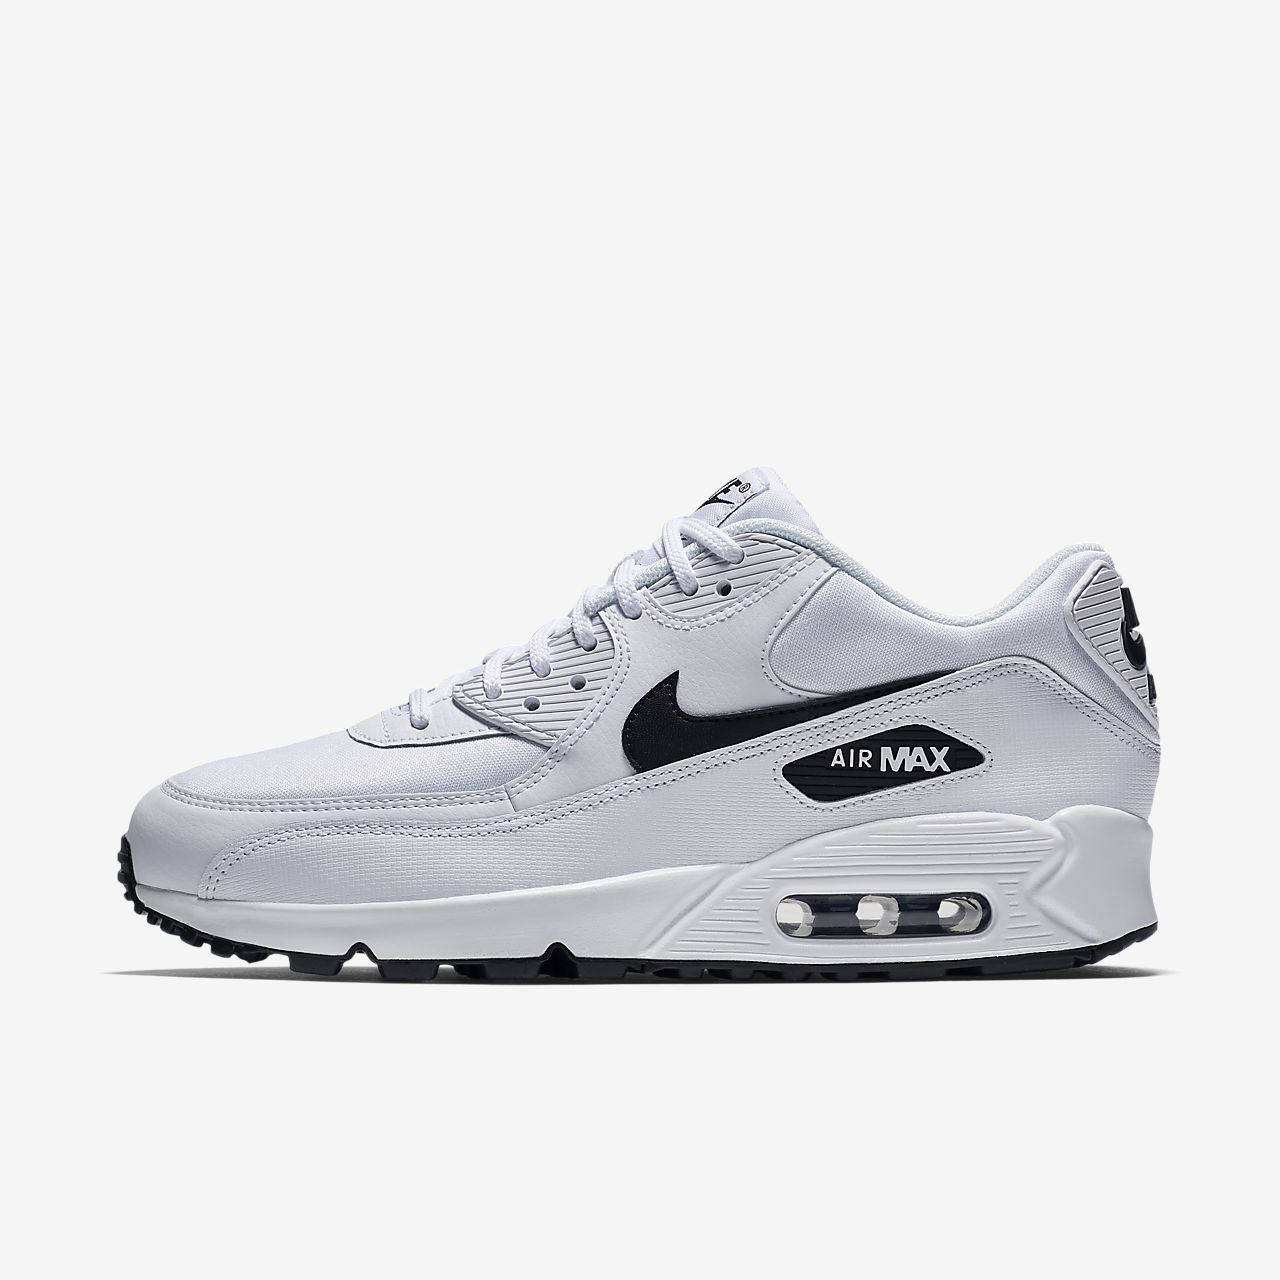 Nike Air Max Women   Buy Nike Shoes   Sneakers - Bluelilyandblue.com d3fb019e2208